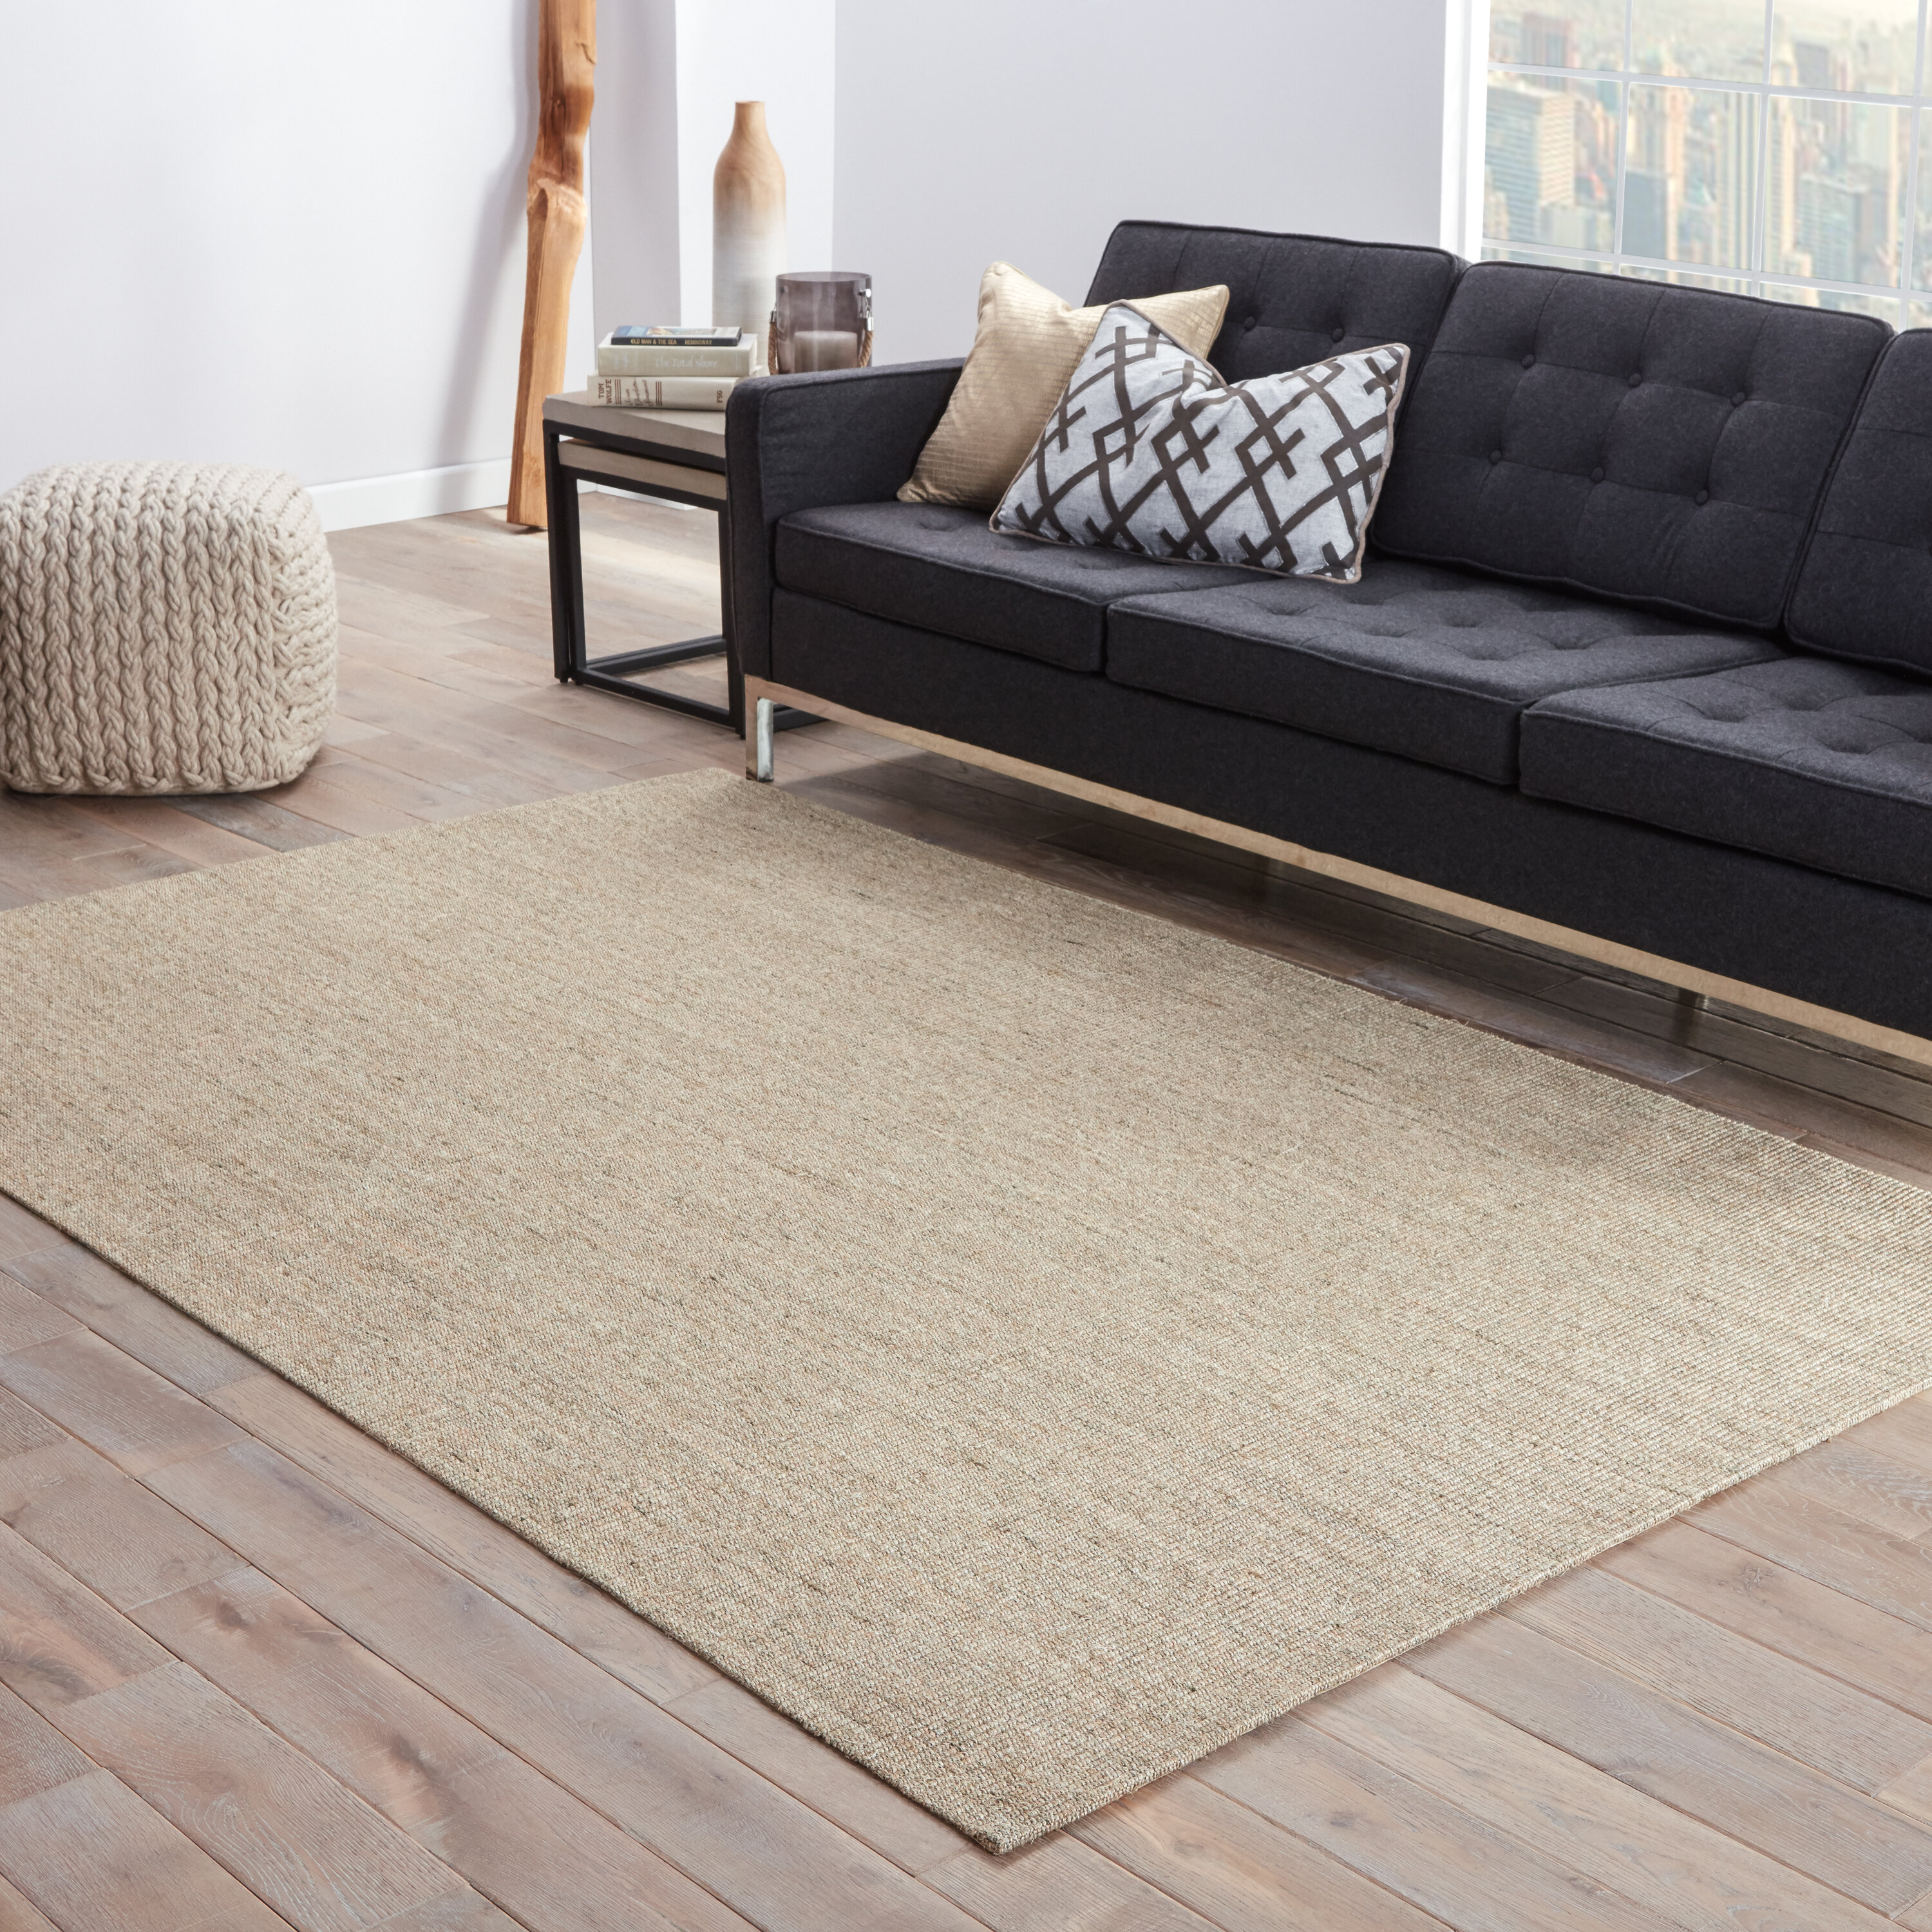 Our Custom Rug Program Lets You Pick The Color Combo Of Your Bordered Round Jute So That It S Just Right For E Made To Order